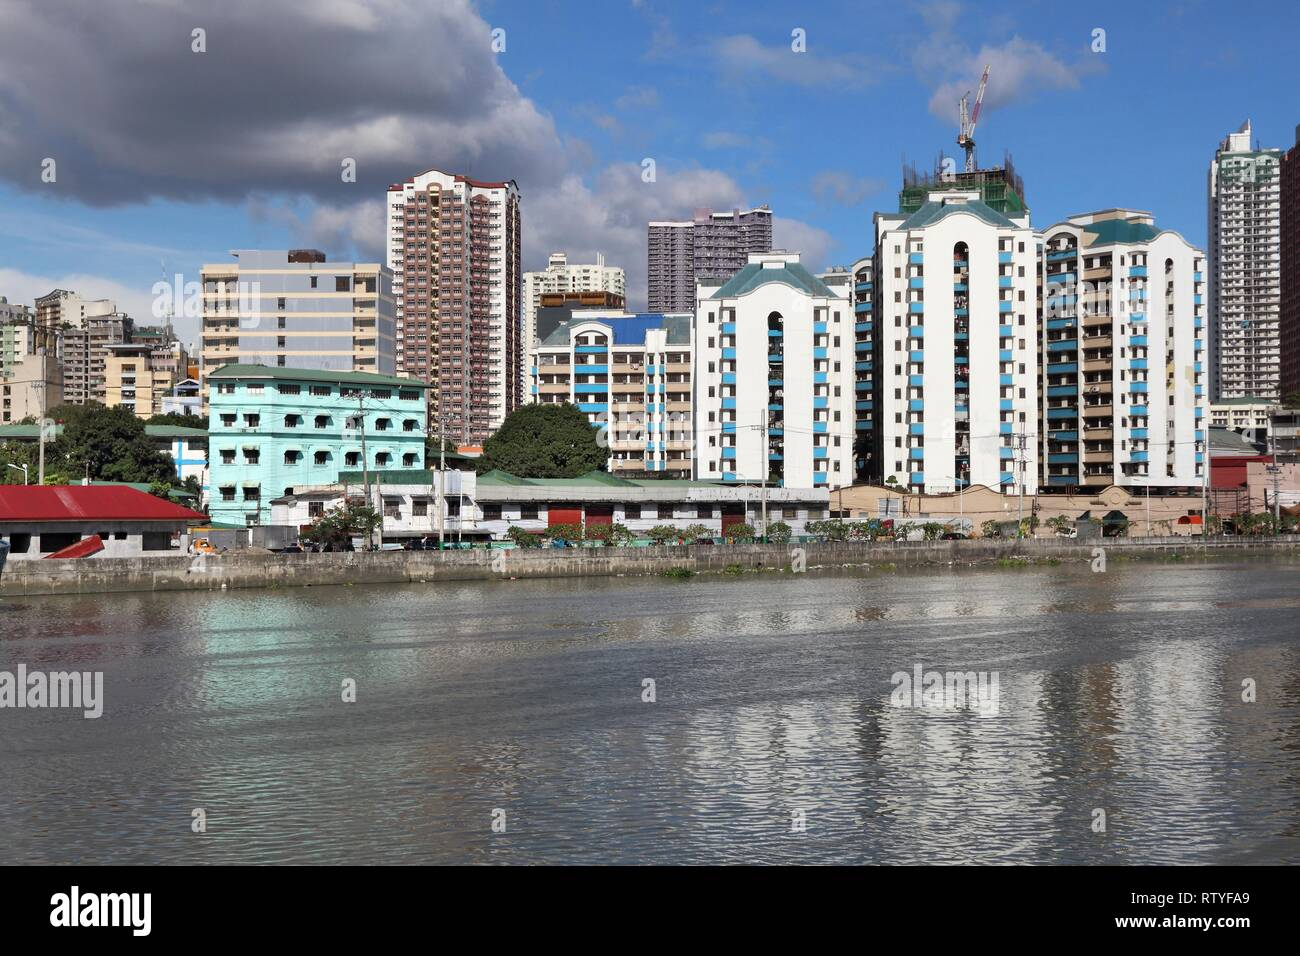 Manila city skyline in Philippines. Residential towers and Pasig River. - Stock Image